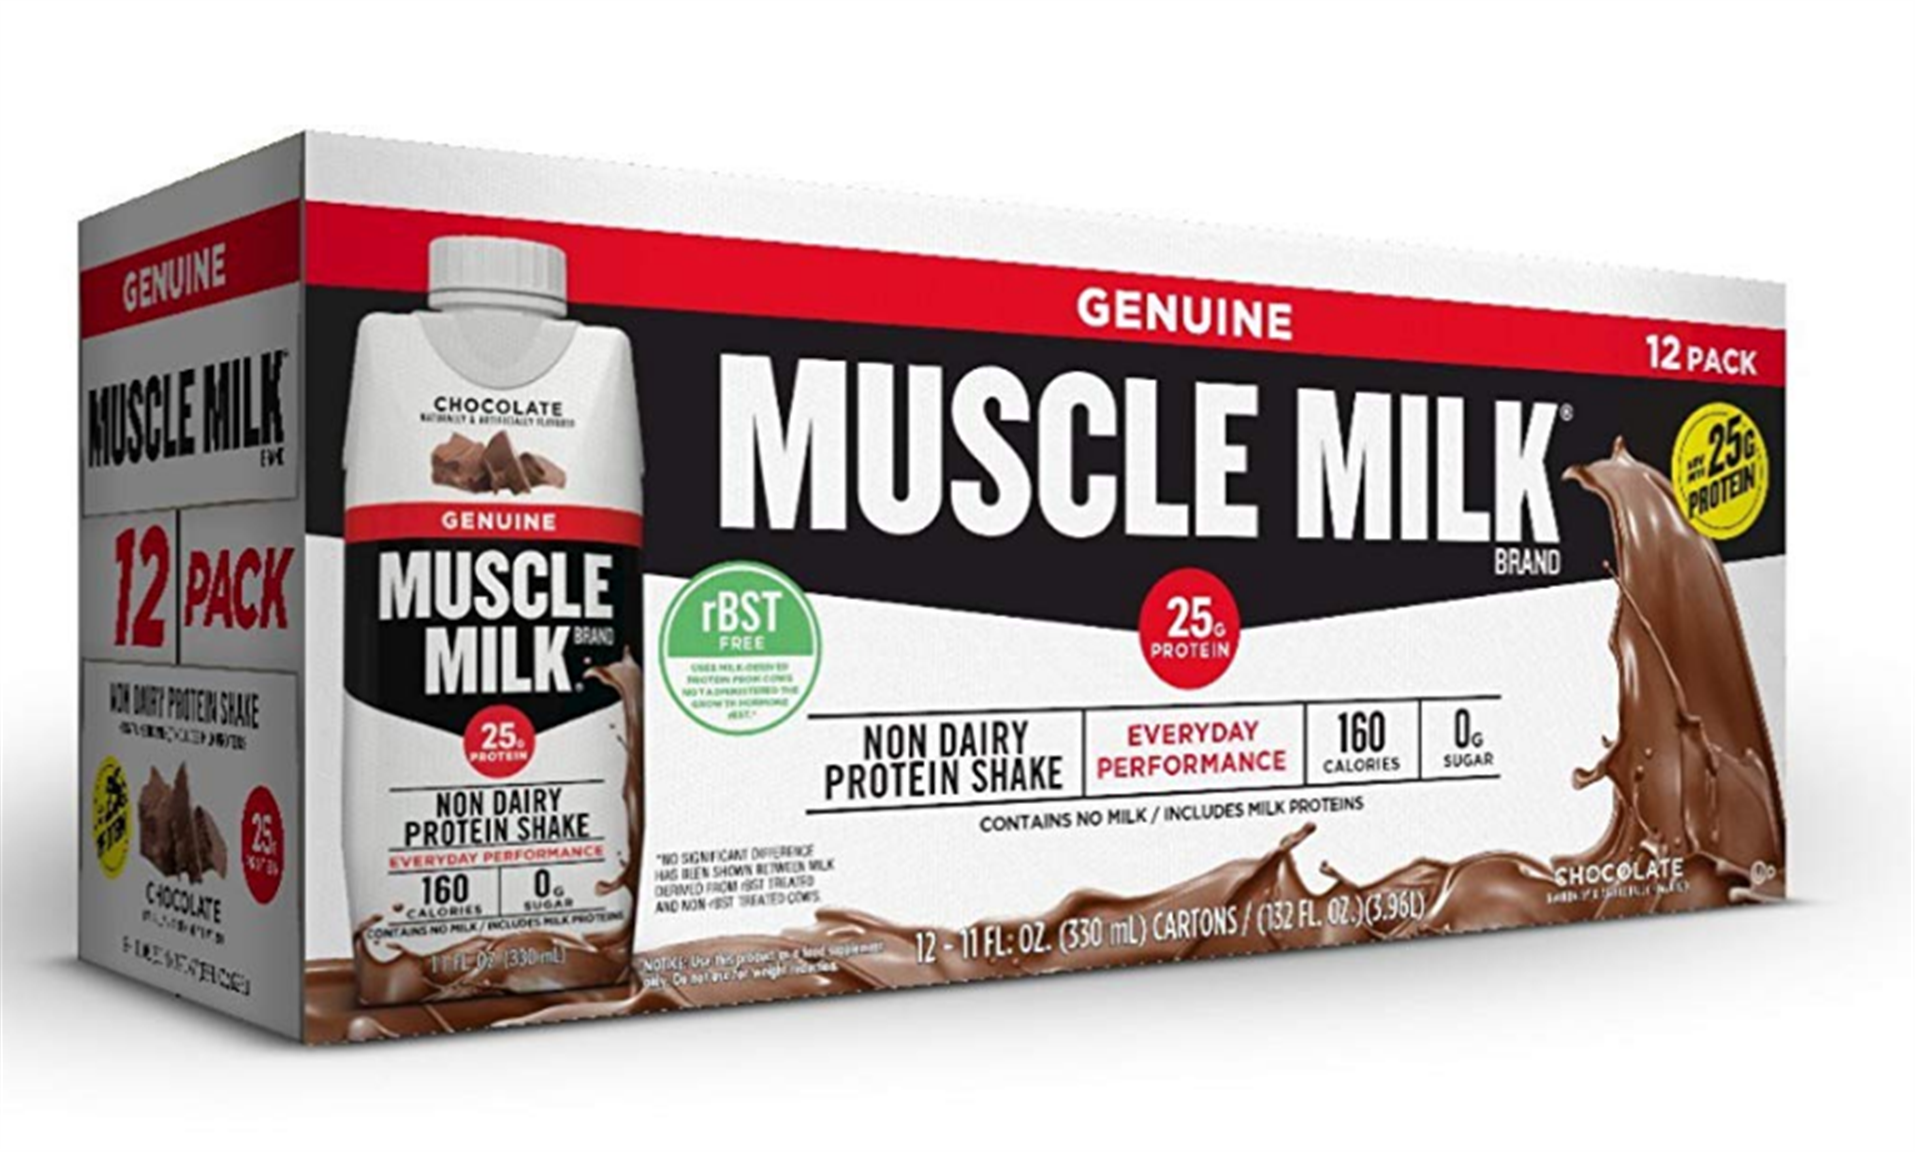 Muscle Milk Protein Shakes 12 Pack ( 25g) Chocolate (11oz) Only $8.82, Reg $13.88 + Free Shipping!